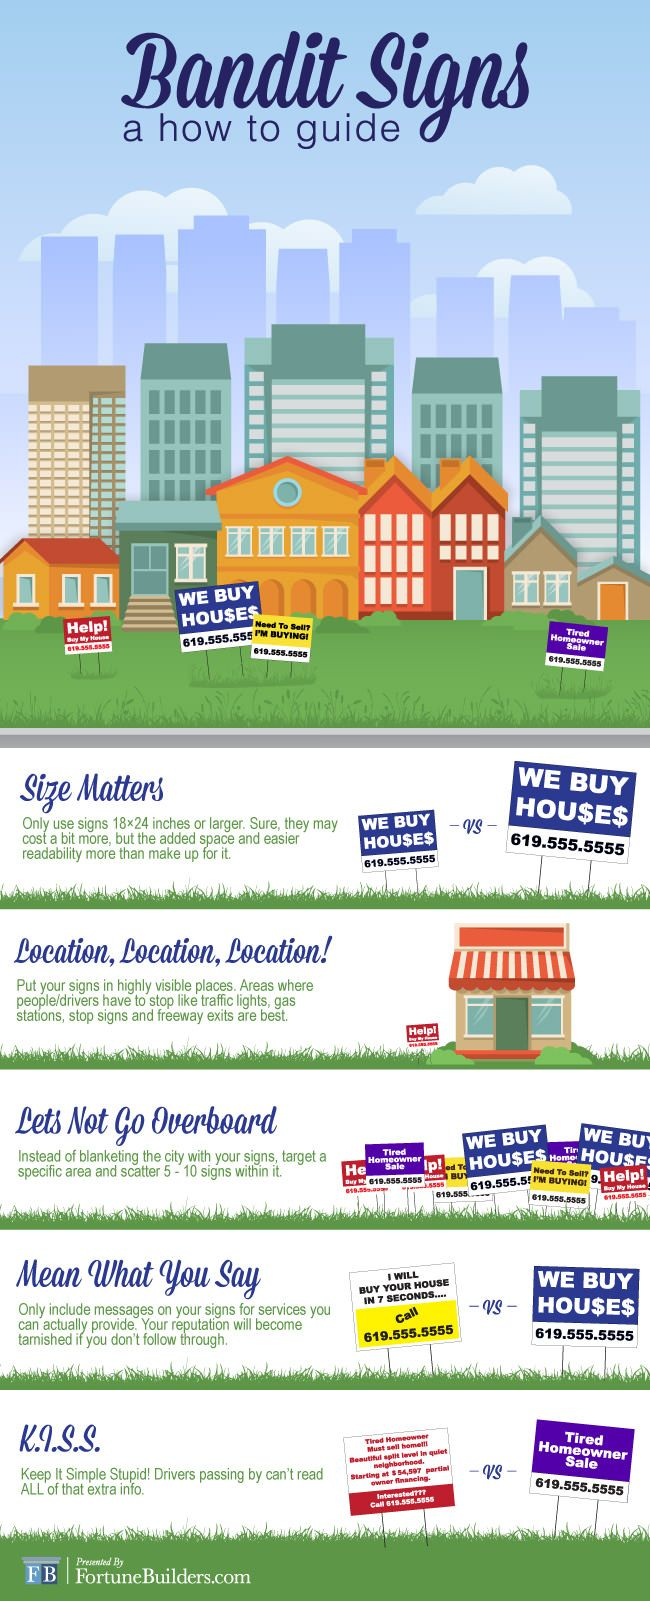 #Infographic: Bandit Signs: Quick Fixes For Common Problems - Read more here: http://www.fortunebuilders.com/real-estate-articles/bandit-signs-quick-fixes-common-problems/ #RealEstate #Education